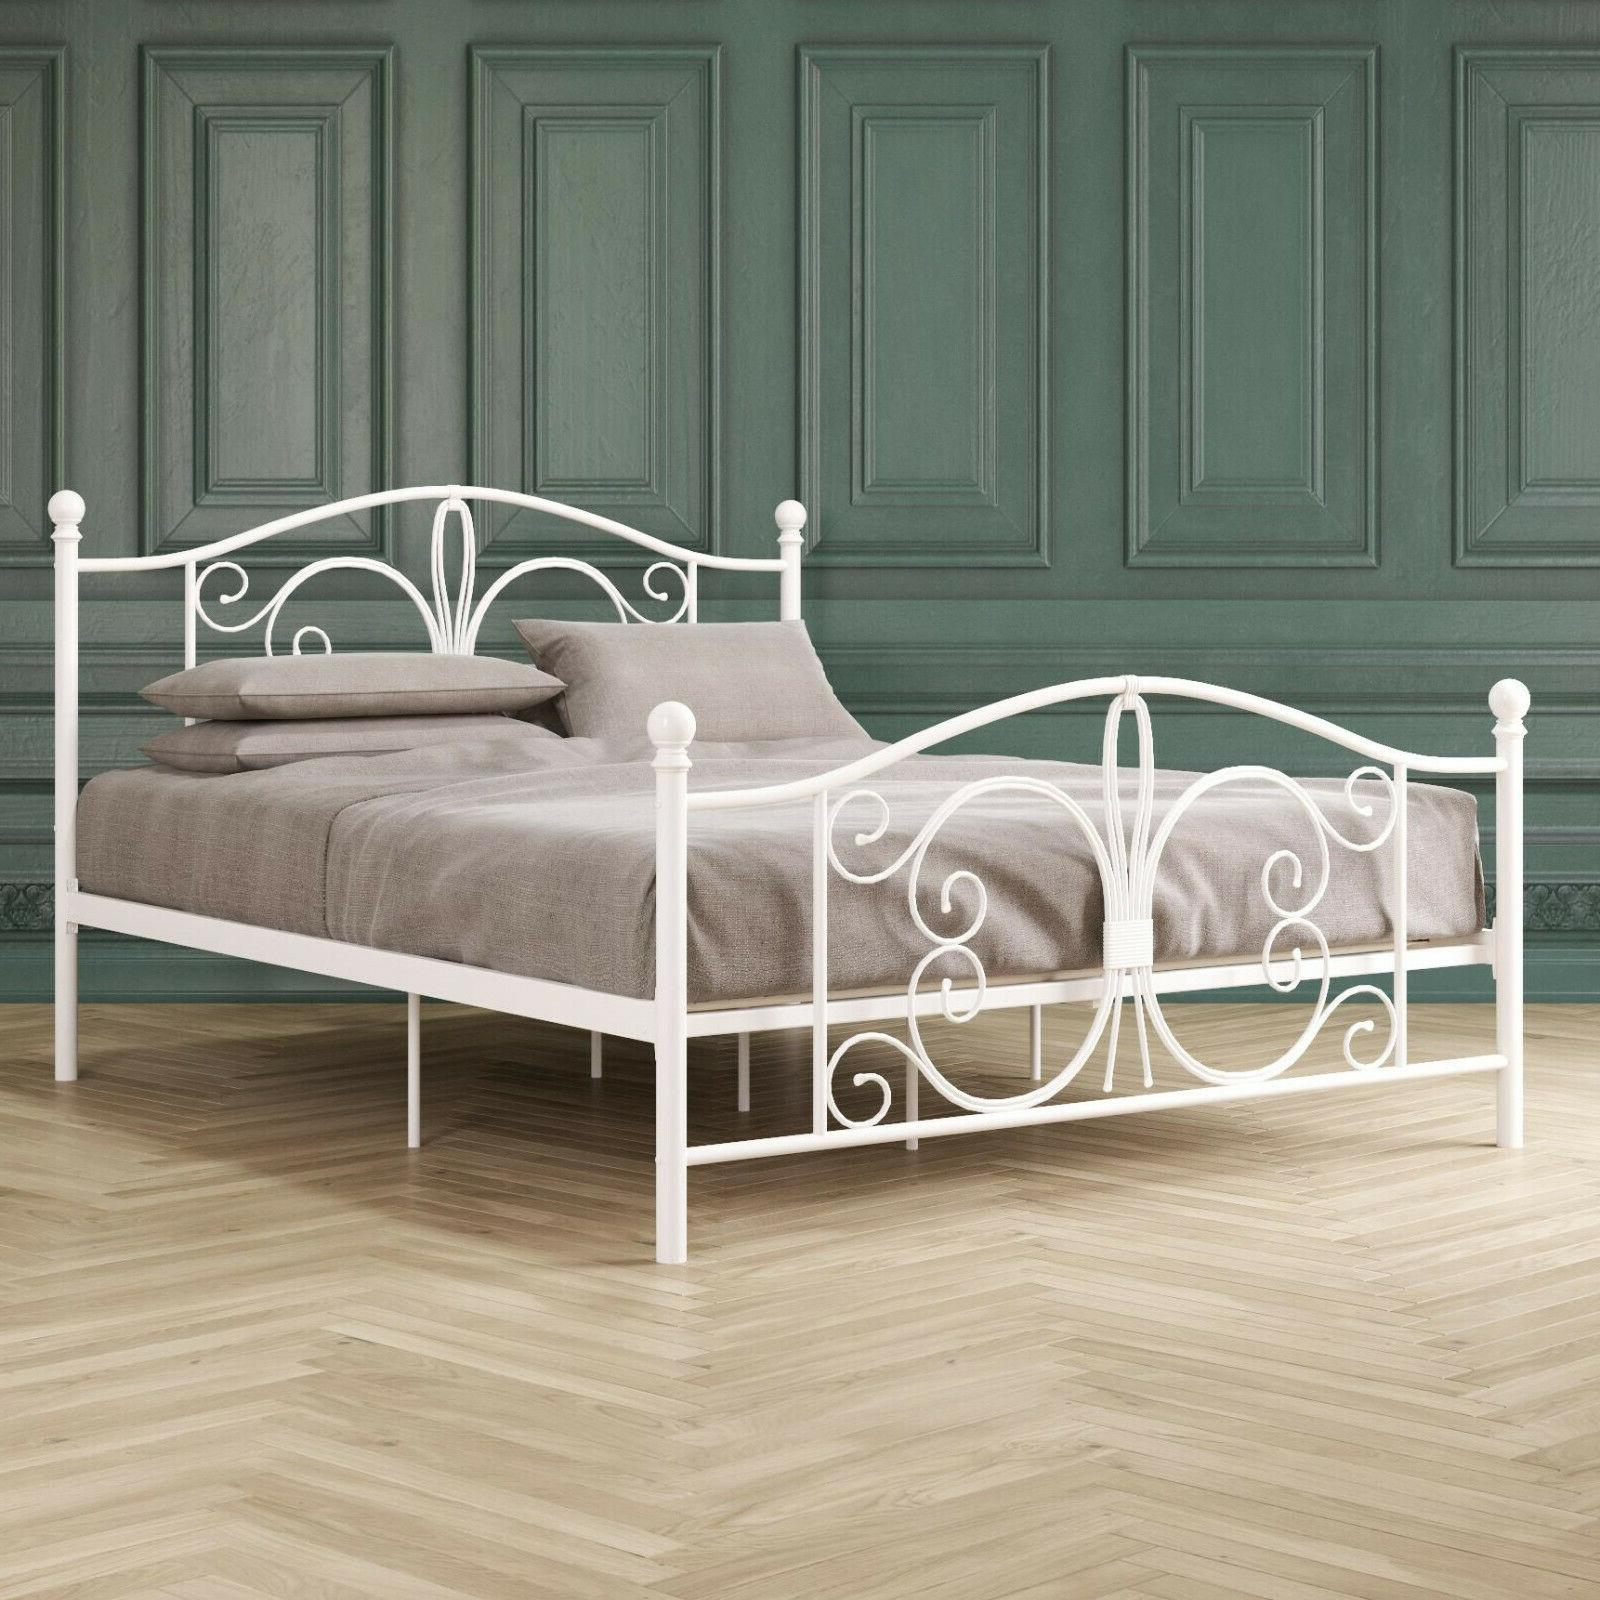 White Metal Platform Bed Butterfly KING size